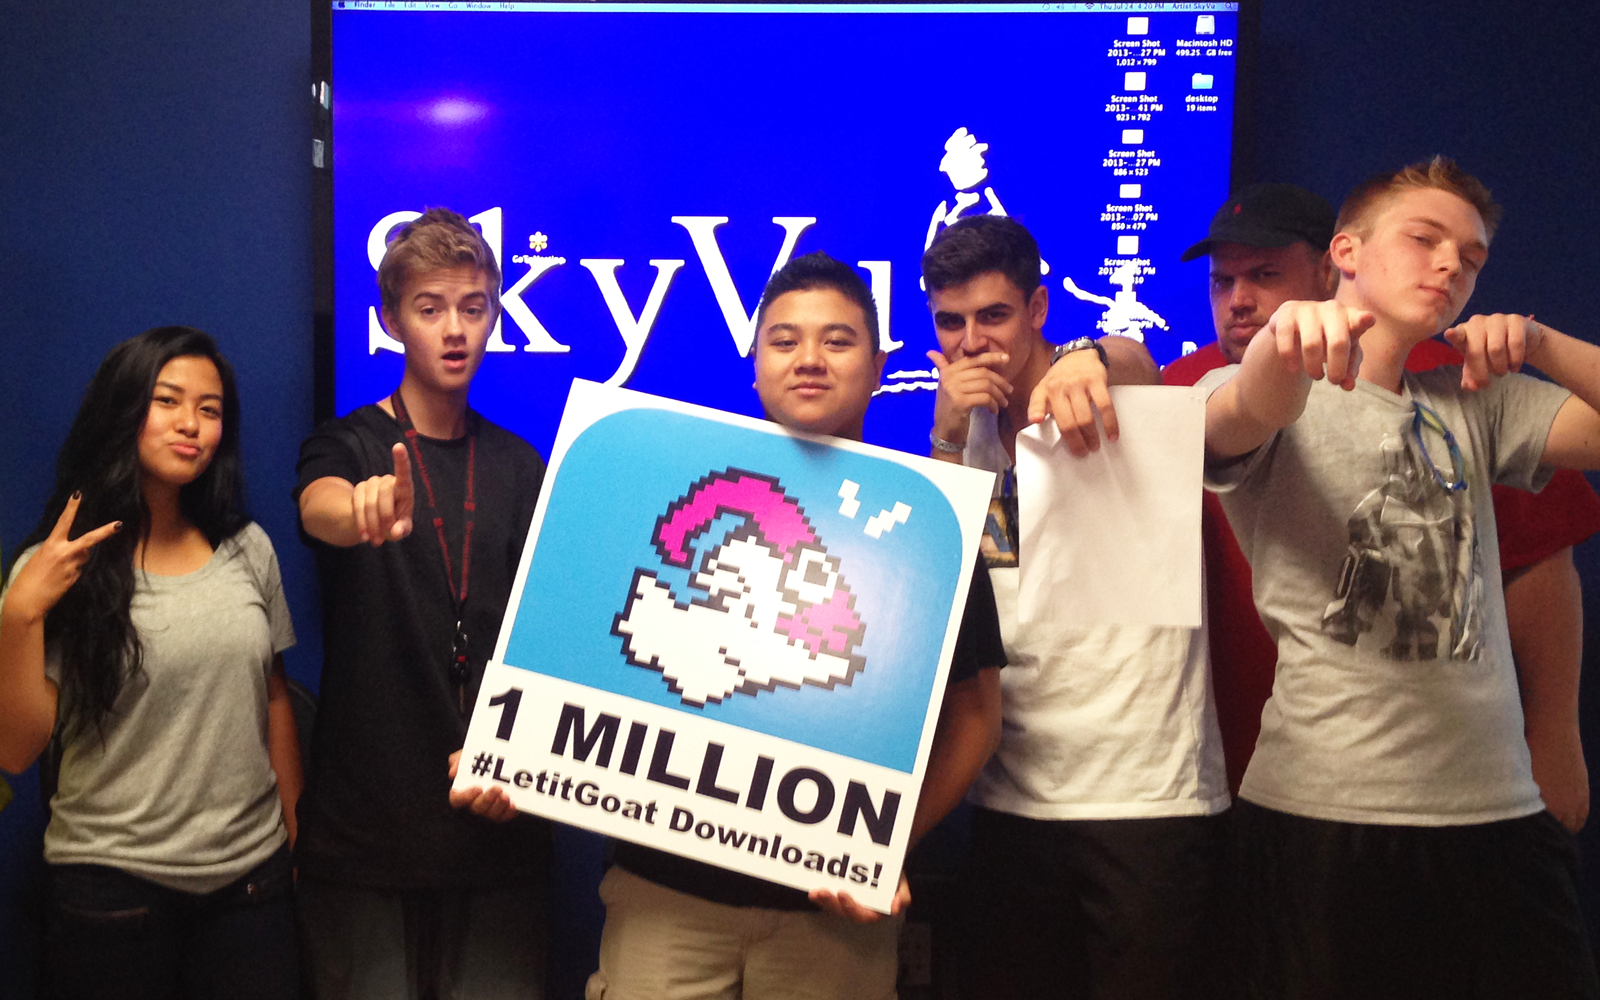 Vine stars Jack & Jack celebrate reaching 1 MILLION Let it Goat downloads